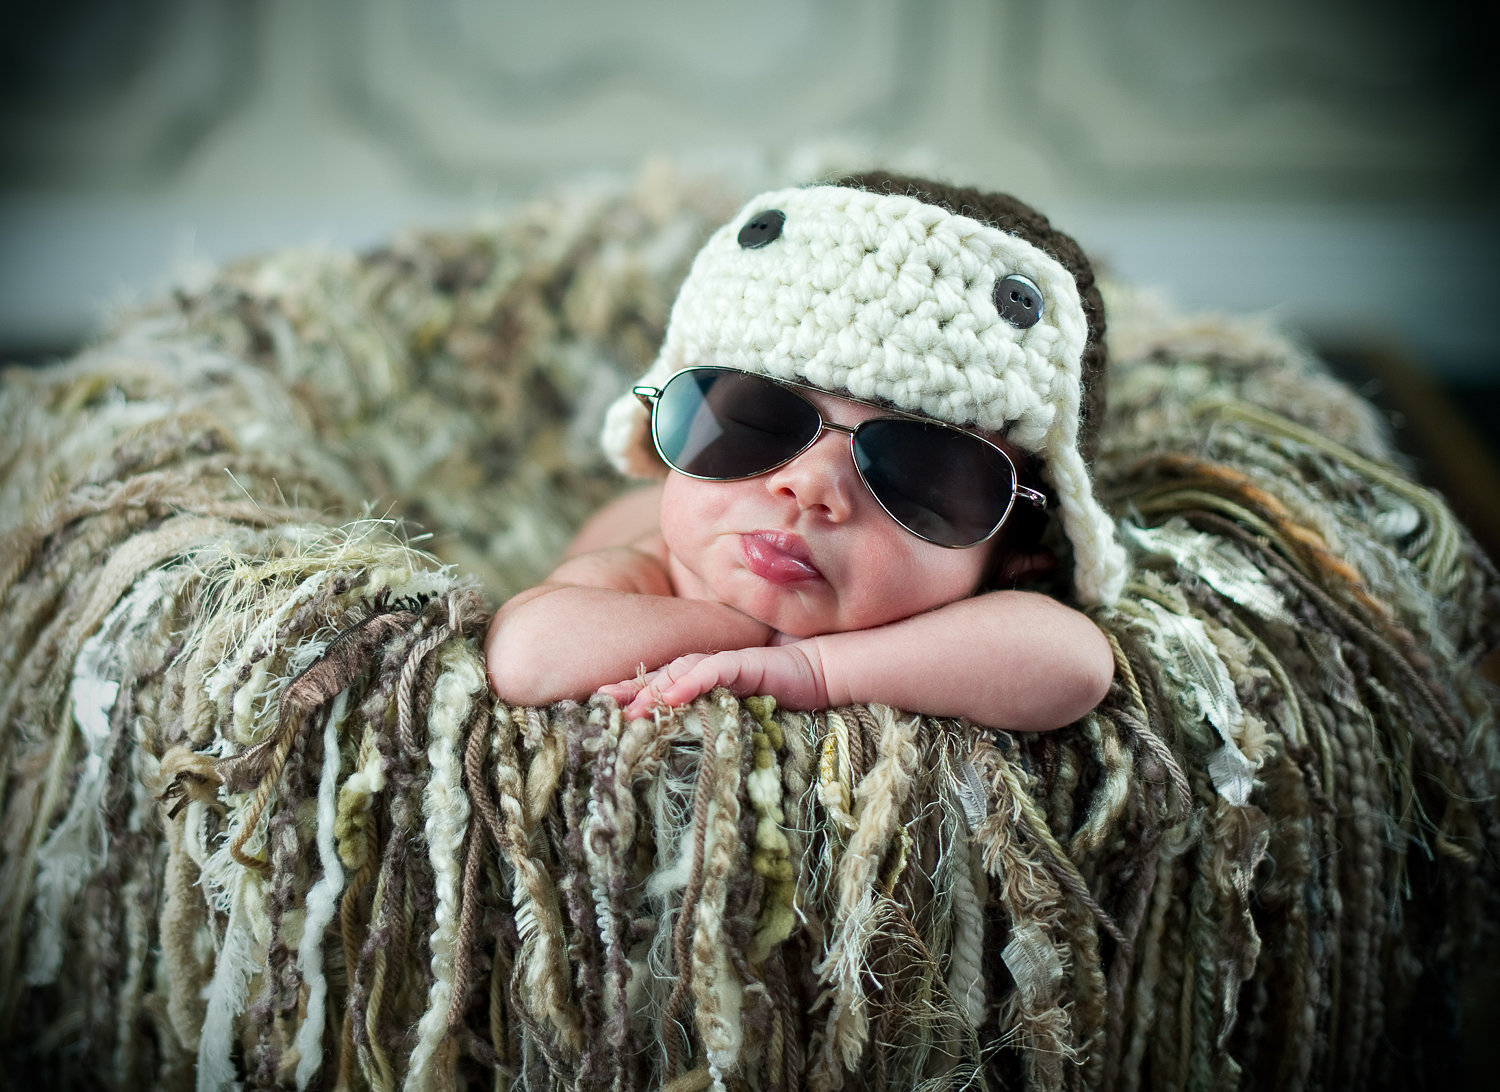 newborn baby posing with aviator sunglasses and crochet hat